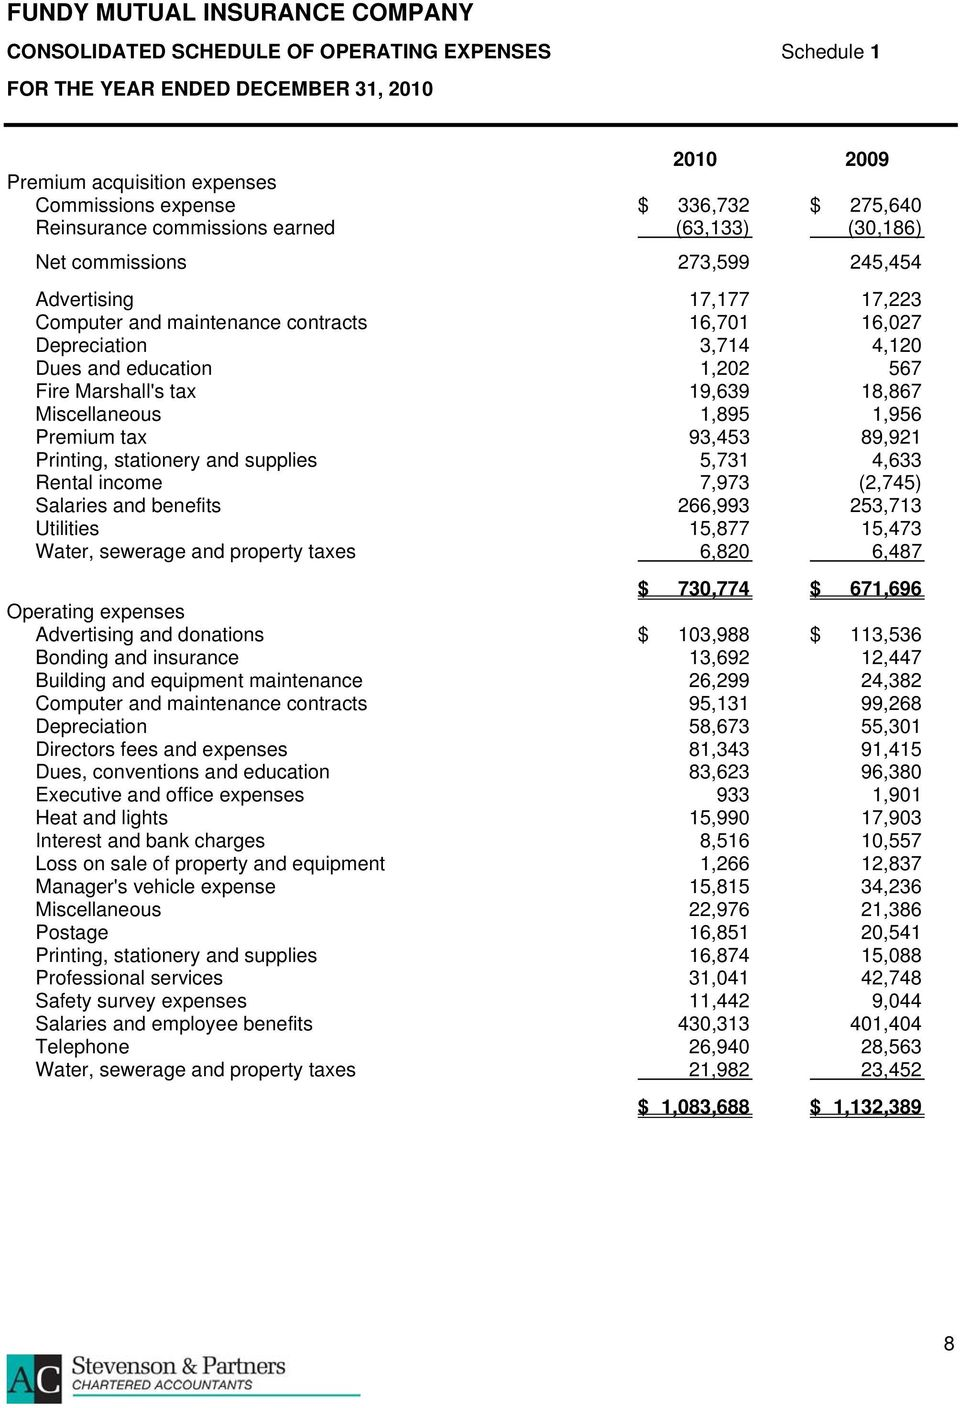 Miscellaneous 1,895 1,956 Premium tax 93,453 89,921 Printing, stationery and supplies 5,731 4,633 Rental income 7,973 (2,745) Salaries and benefits 266,993 253,713 Utilities 15,877 15,473 Water,